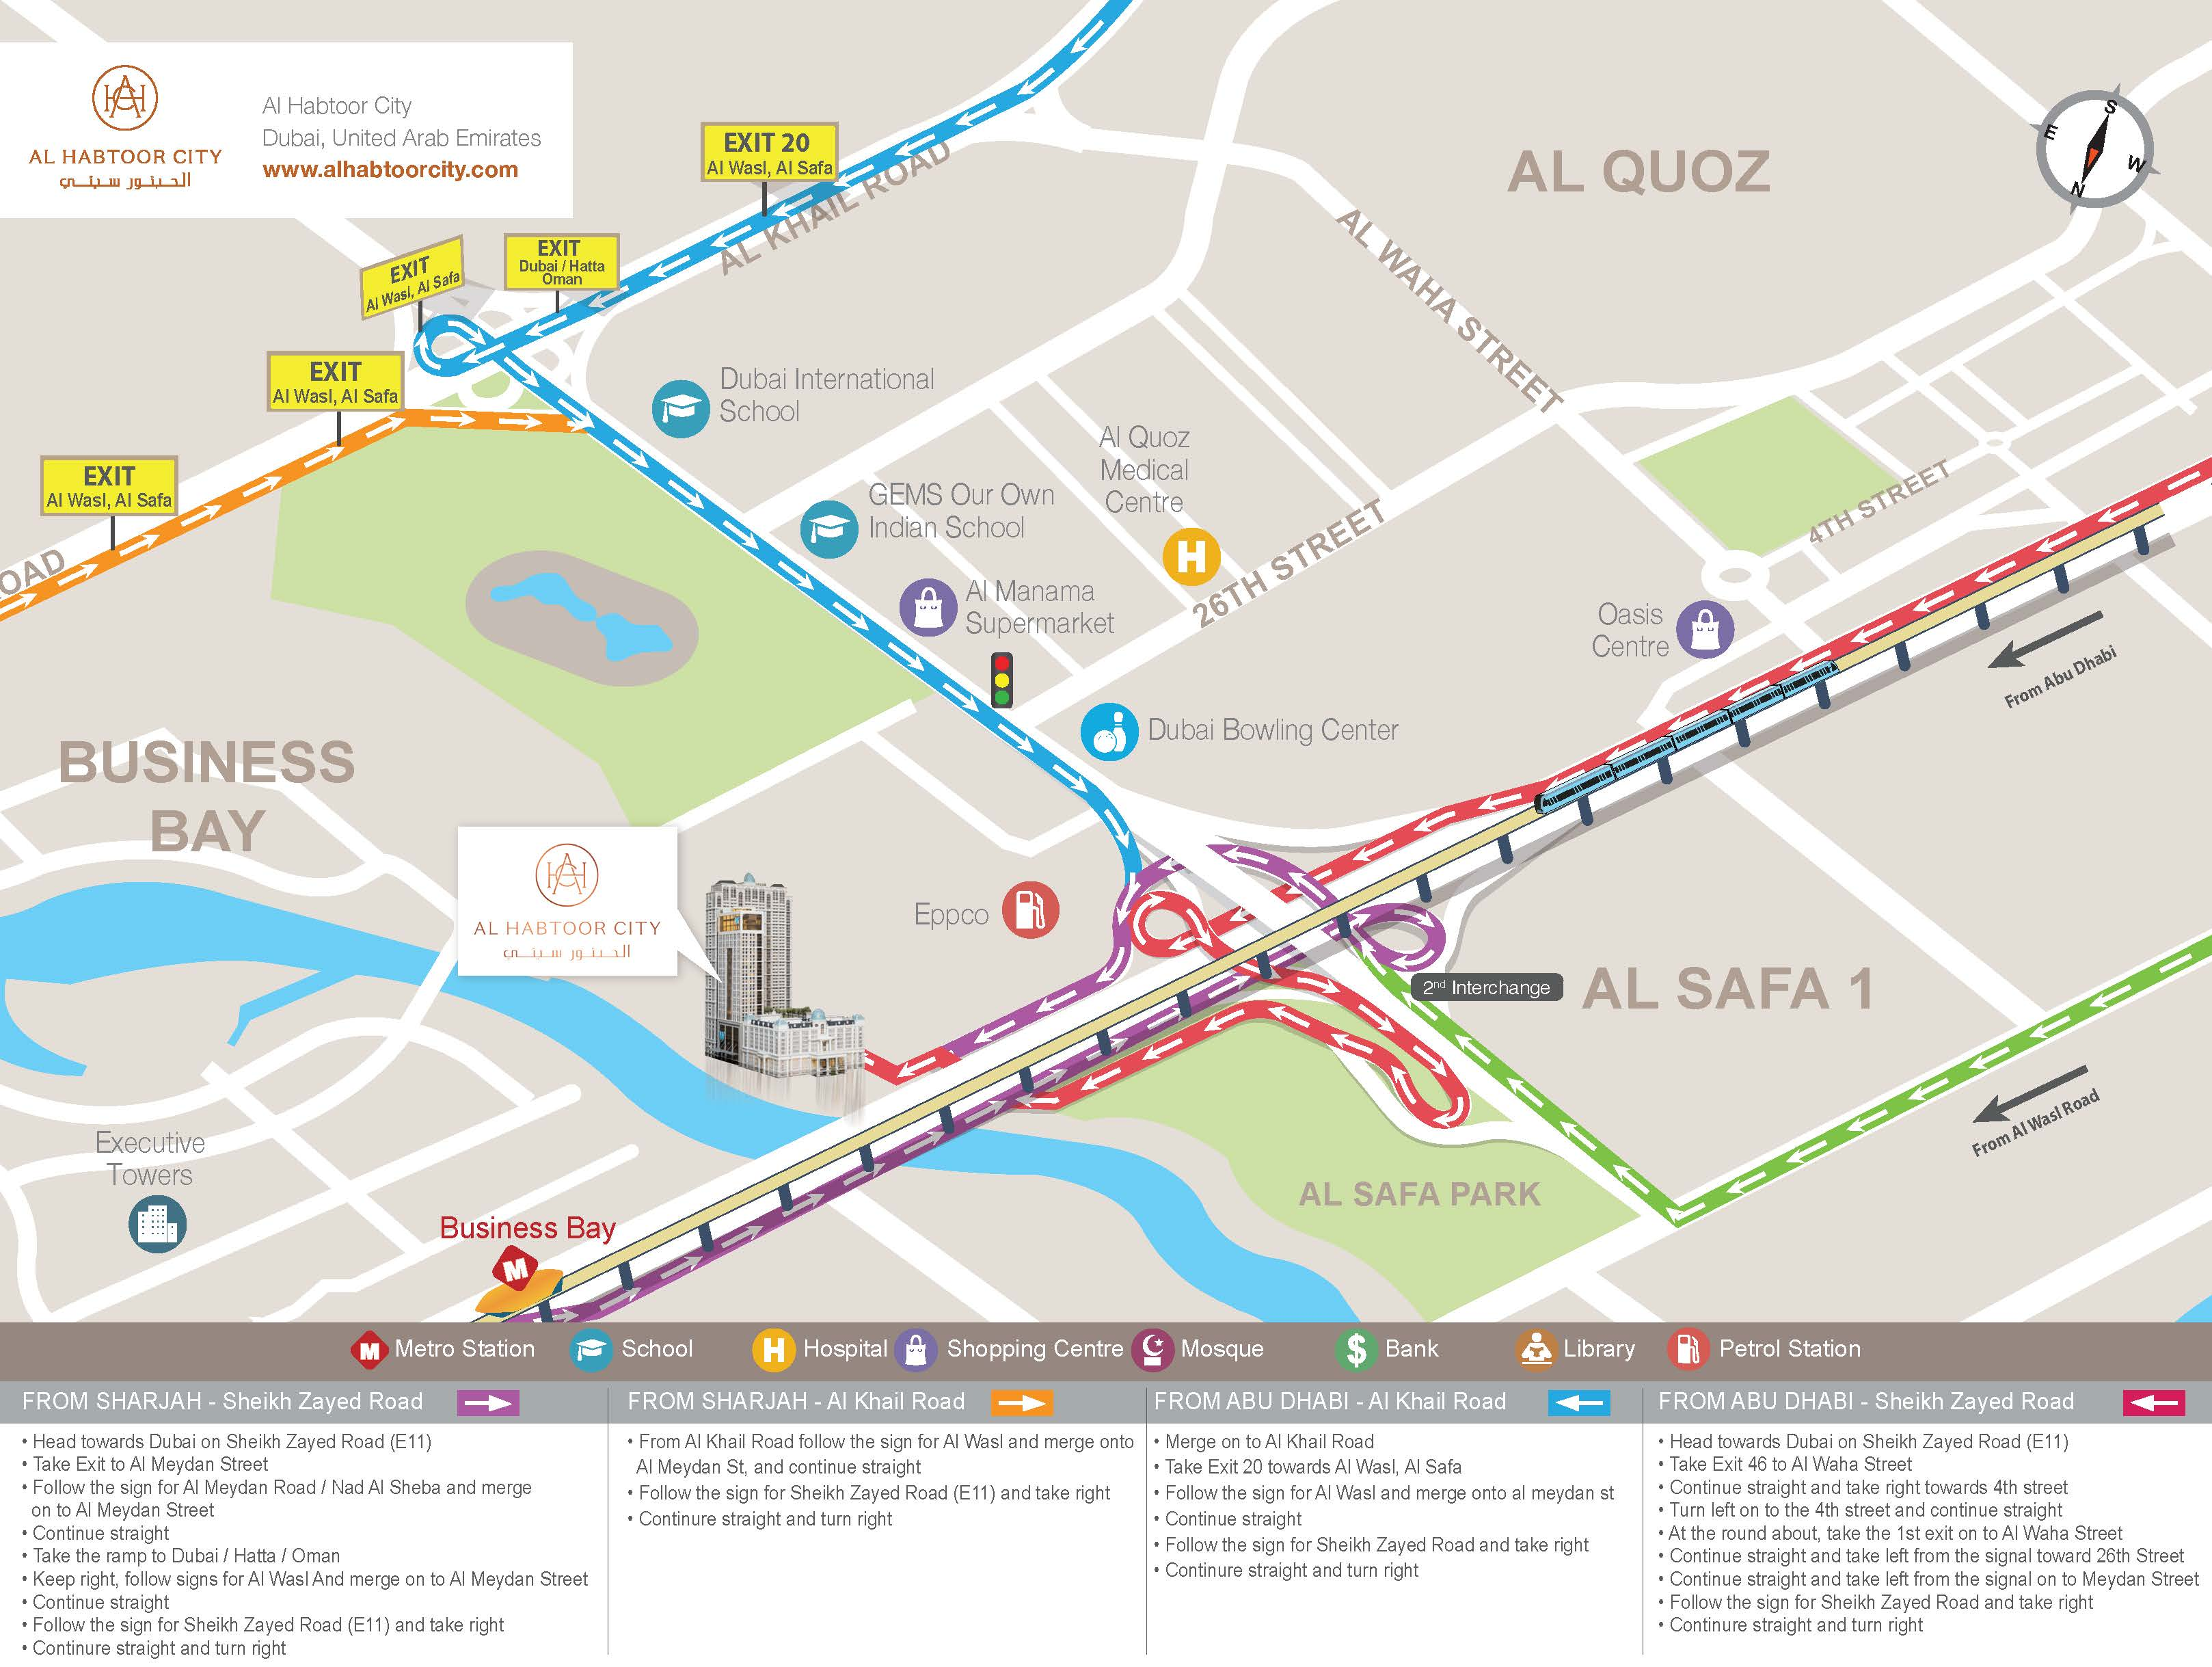 Arrival Information to the St Regis Hotel in Dubai – Abu Dhabi Dubai Map